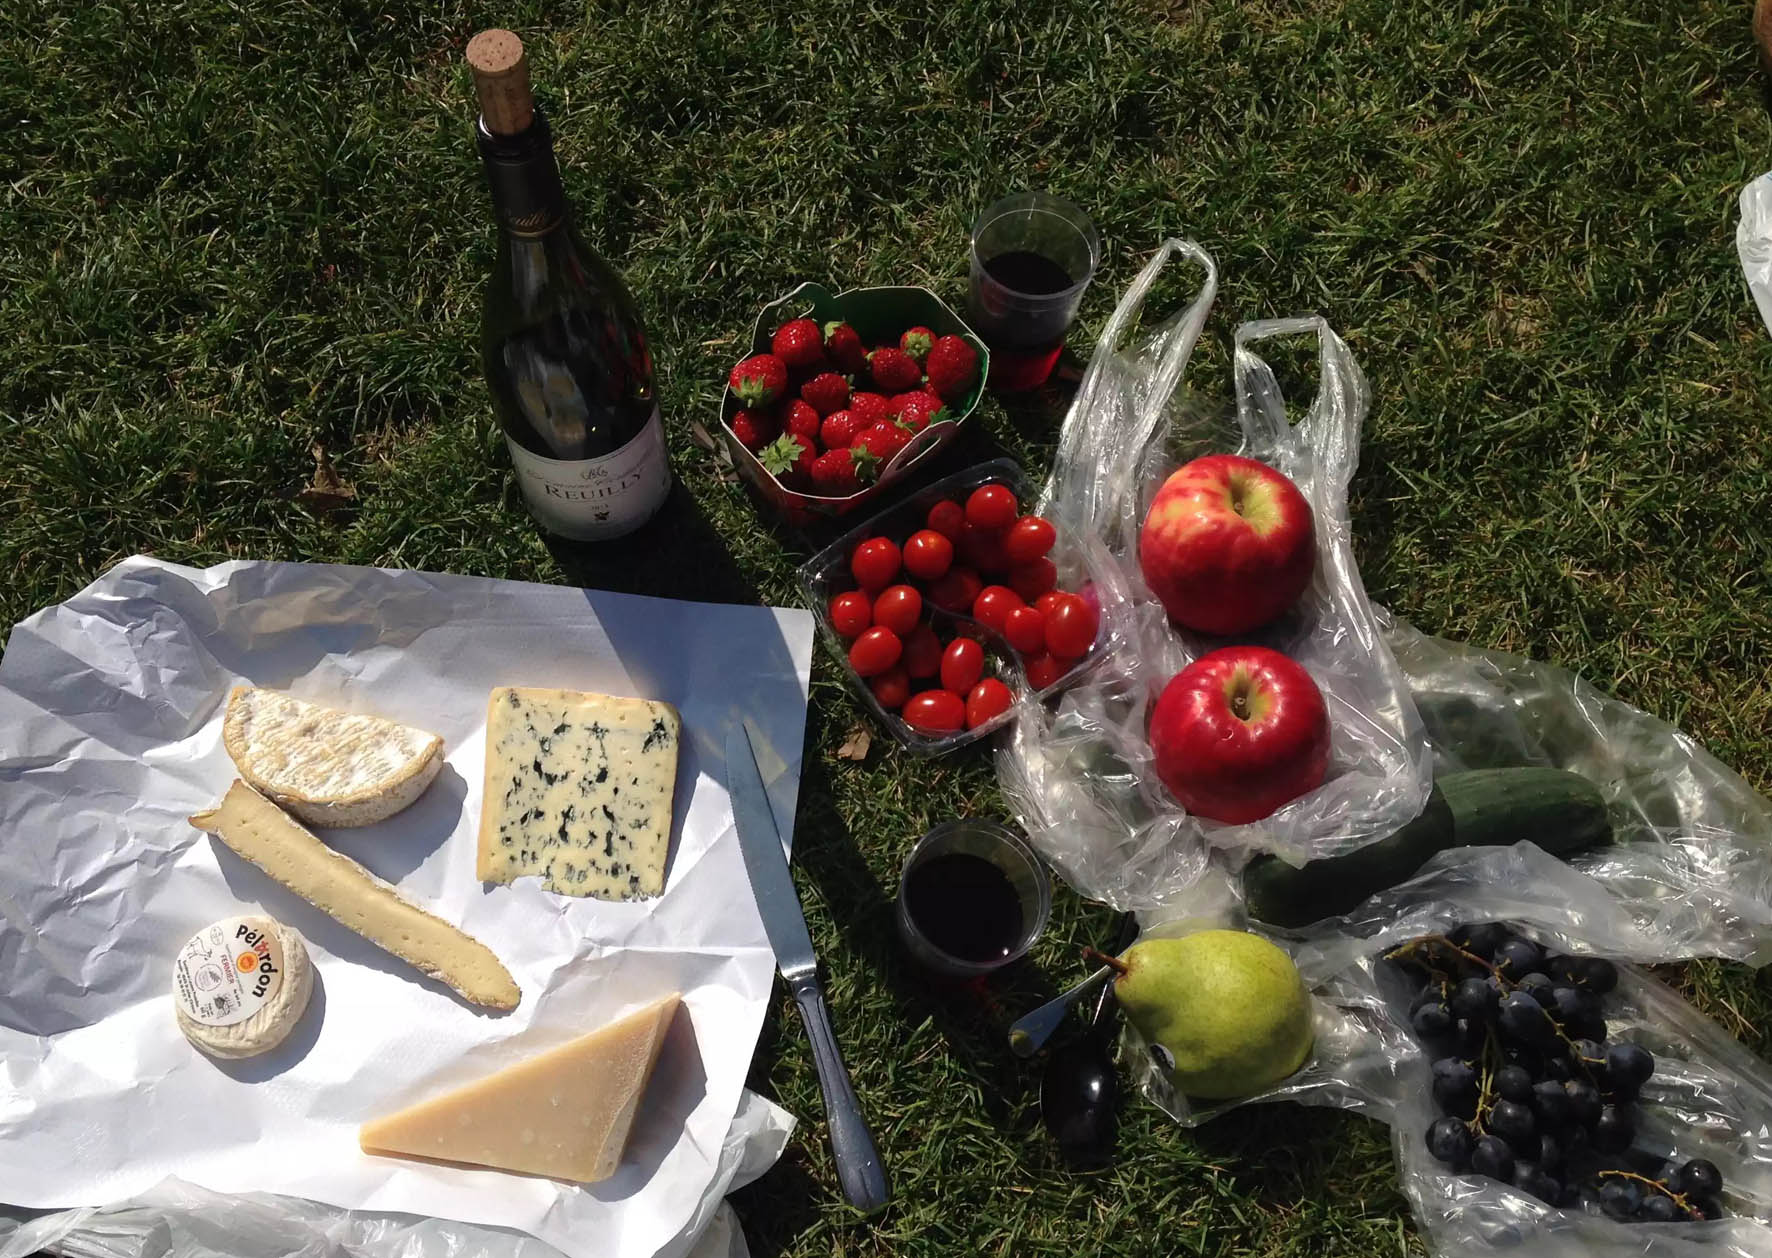 Picnic Park Paris Cheese Wine Fruit